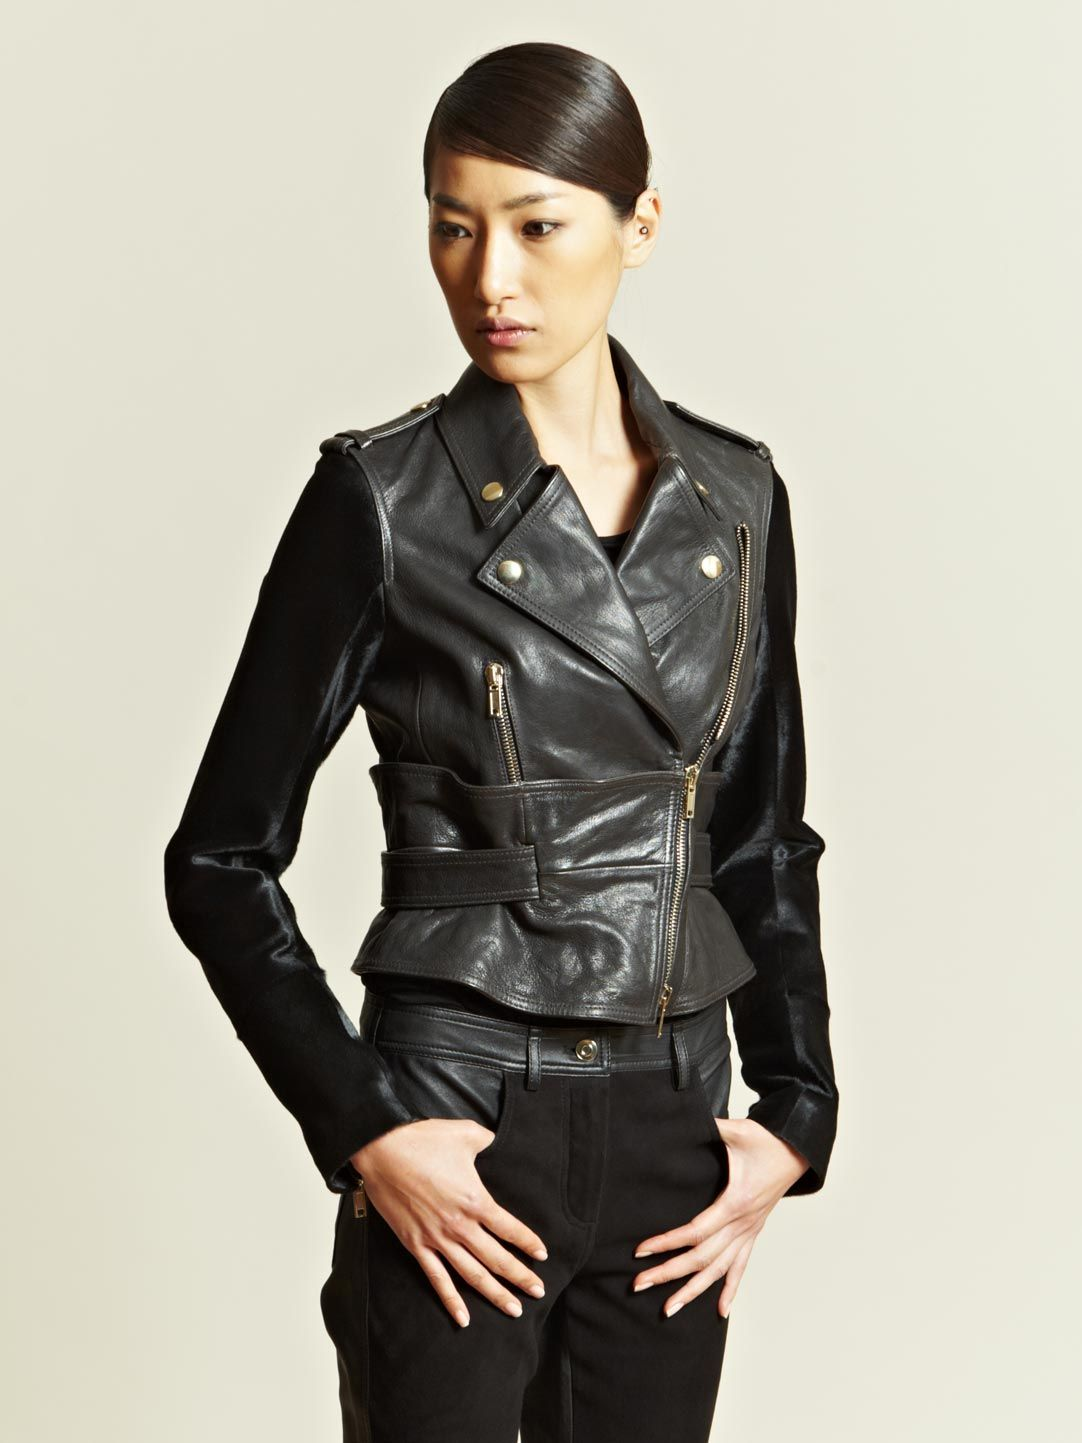 Designer Givenchy See Details Here Givenchy Womens Contrast Panel Leather Jacket Jackets For Women Designer Outfits Woman Coats Jackets Women [ 1443 x 1082 Pixel ]